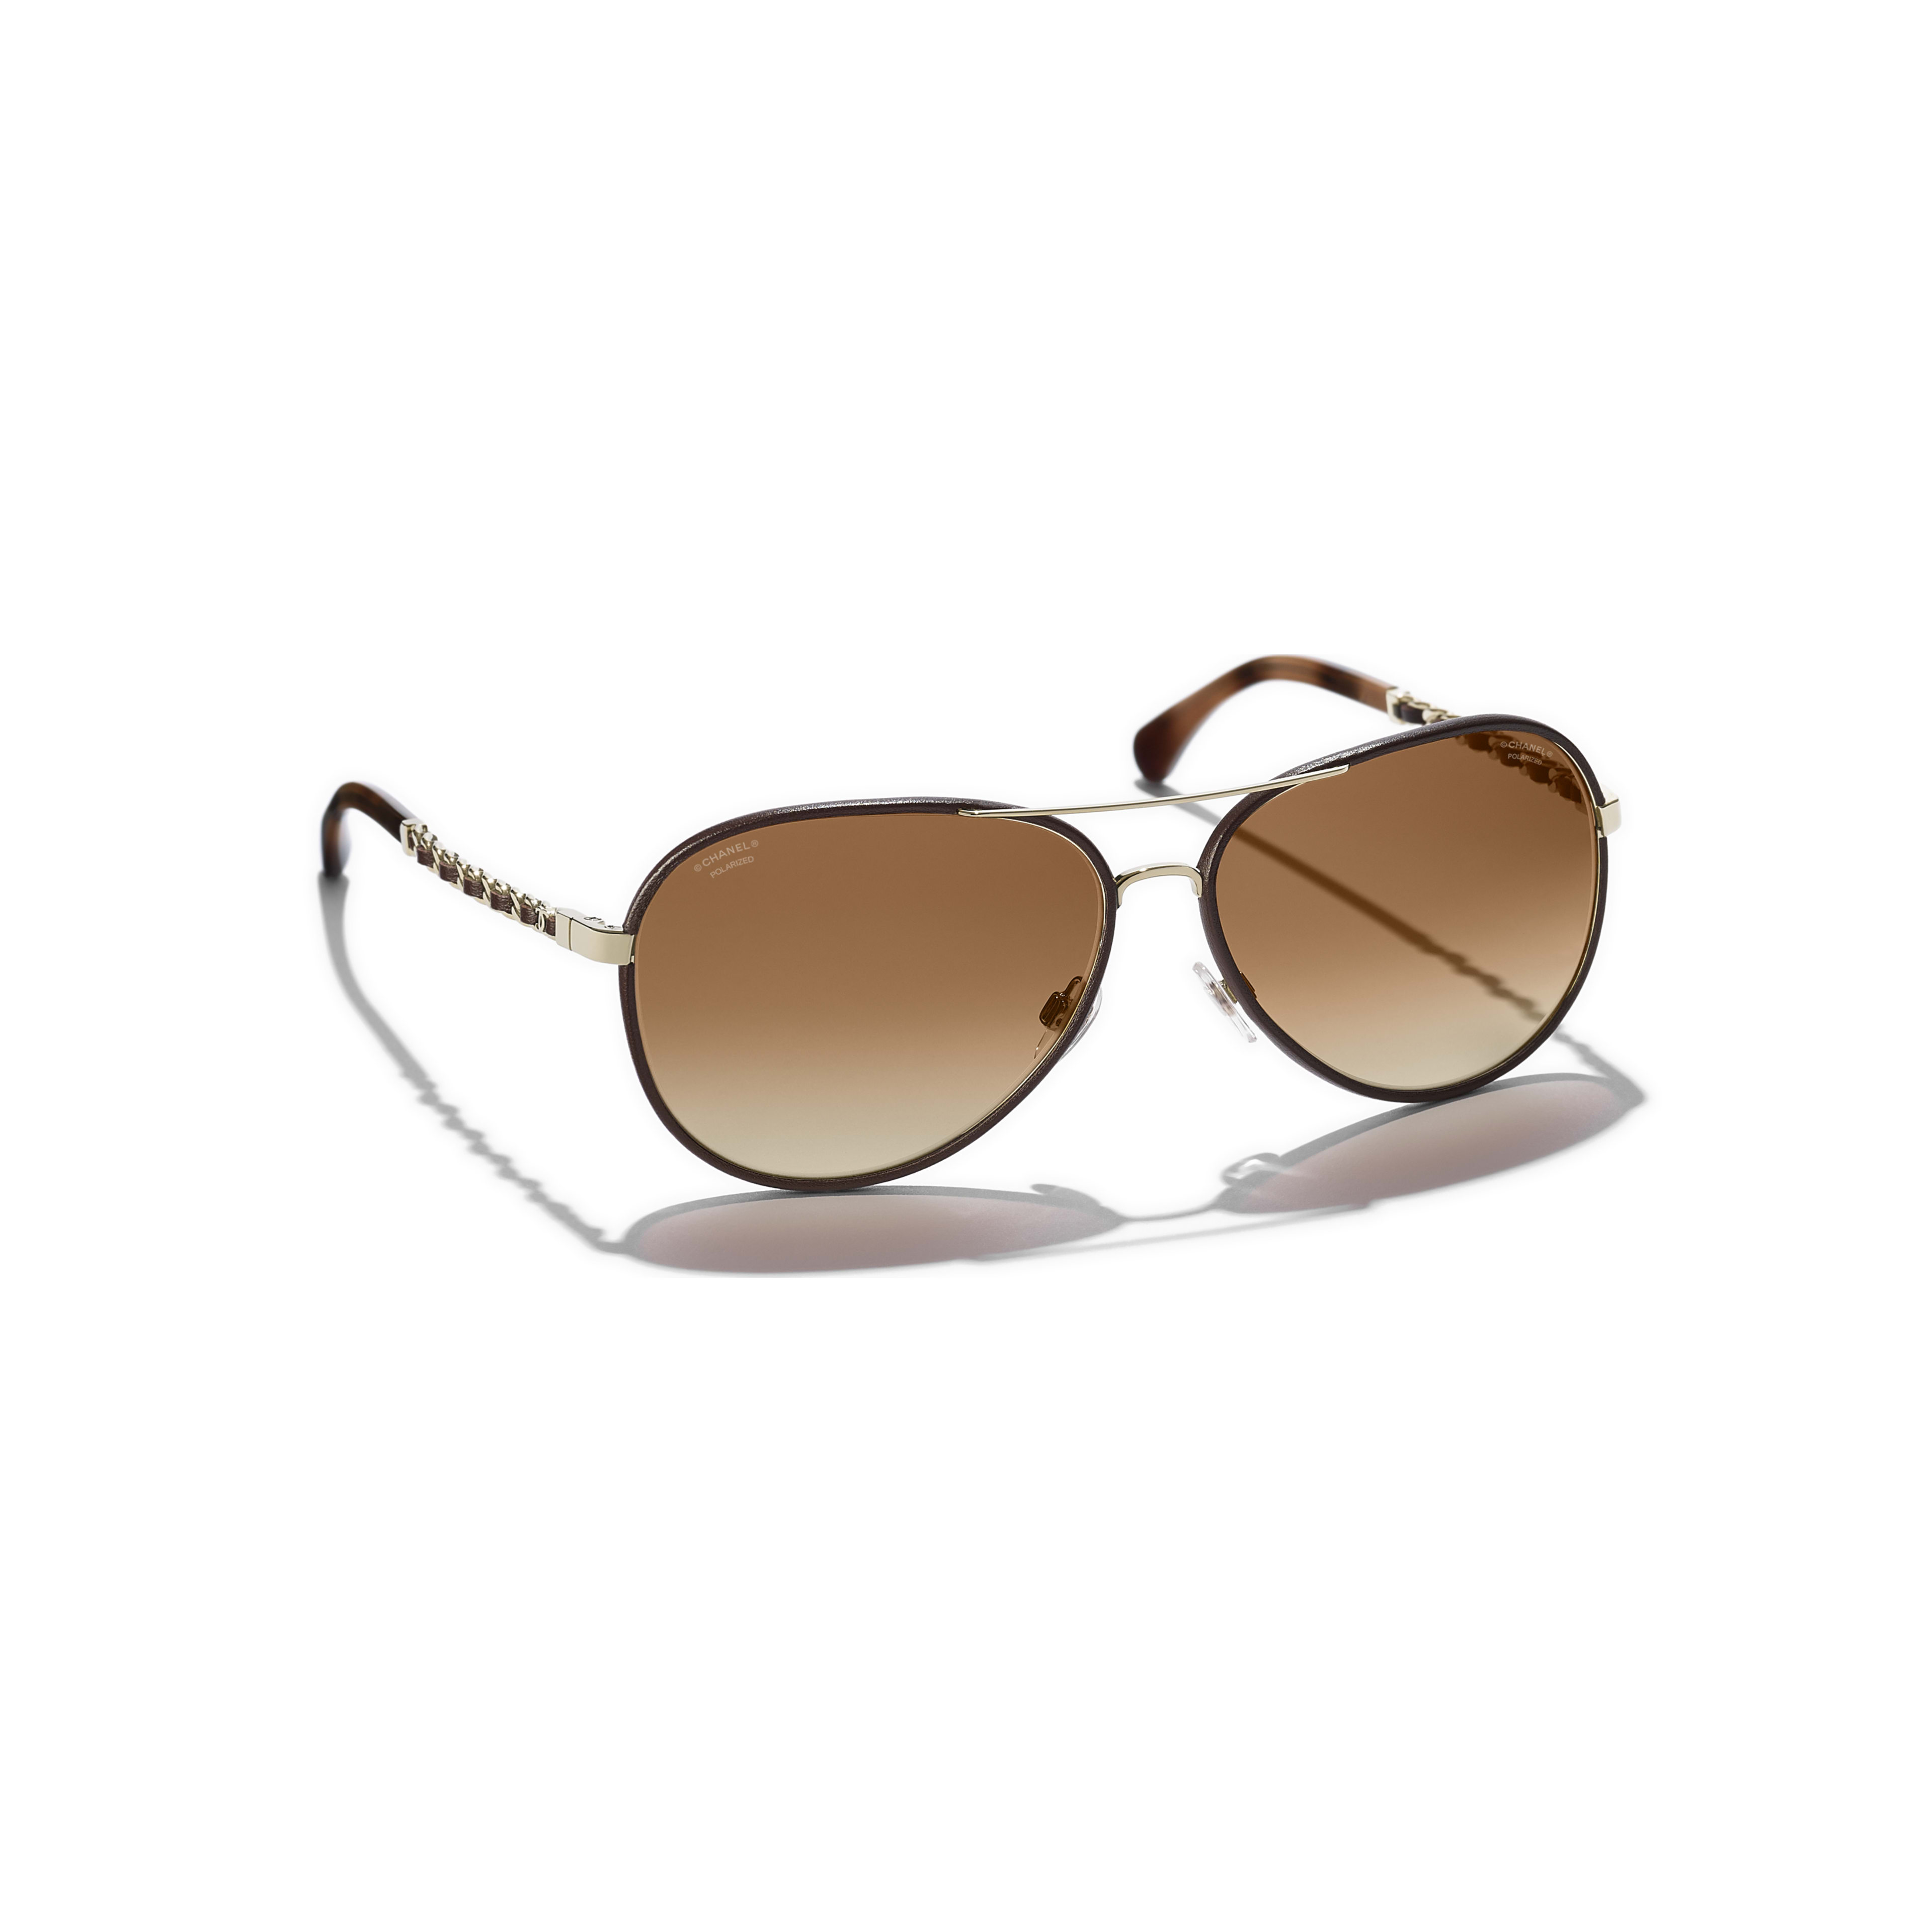 Pilot Sunglasses - Gold & Brown - Metal & Calfskin - CHANEL - Extra view - see standard sized version